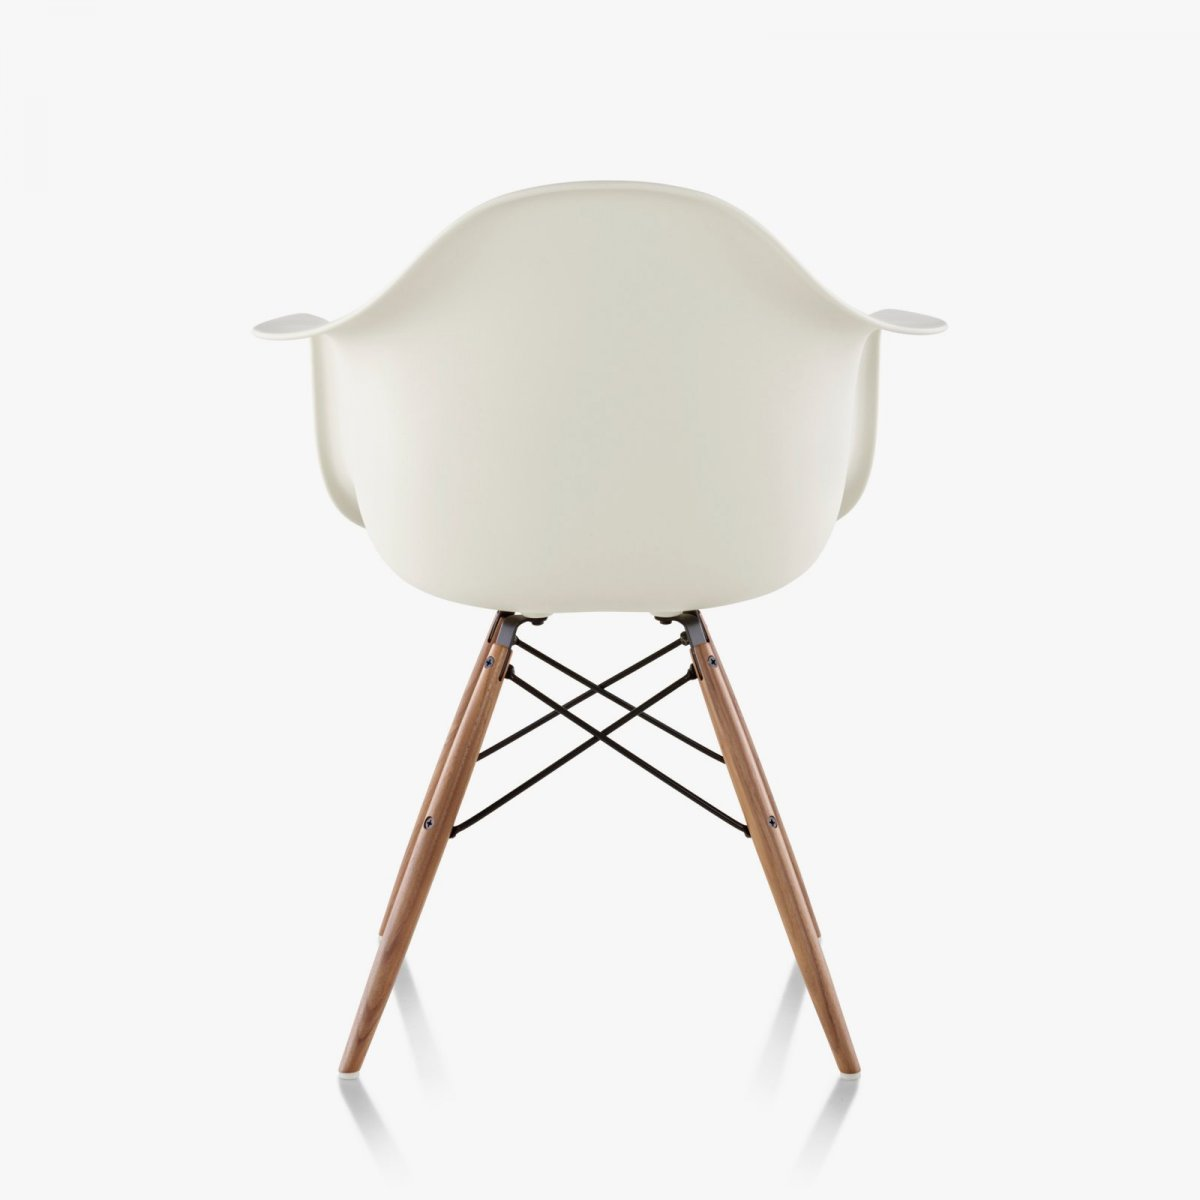 Eames Molded Plastic Armchair Dowel Base, white, back view.